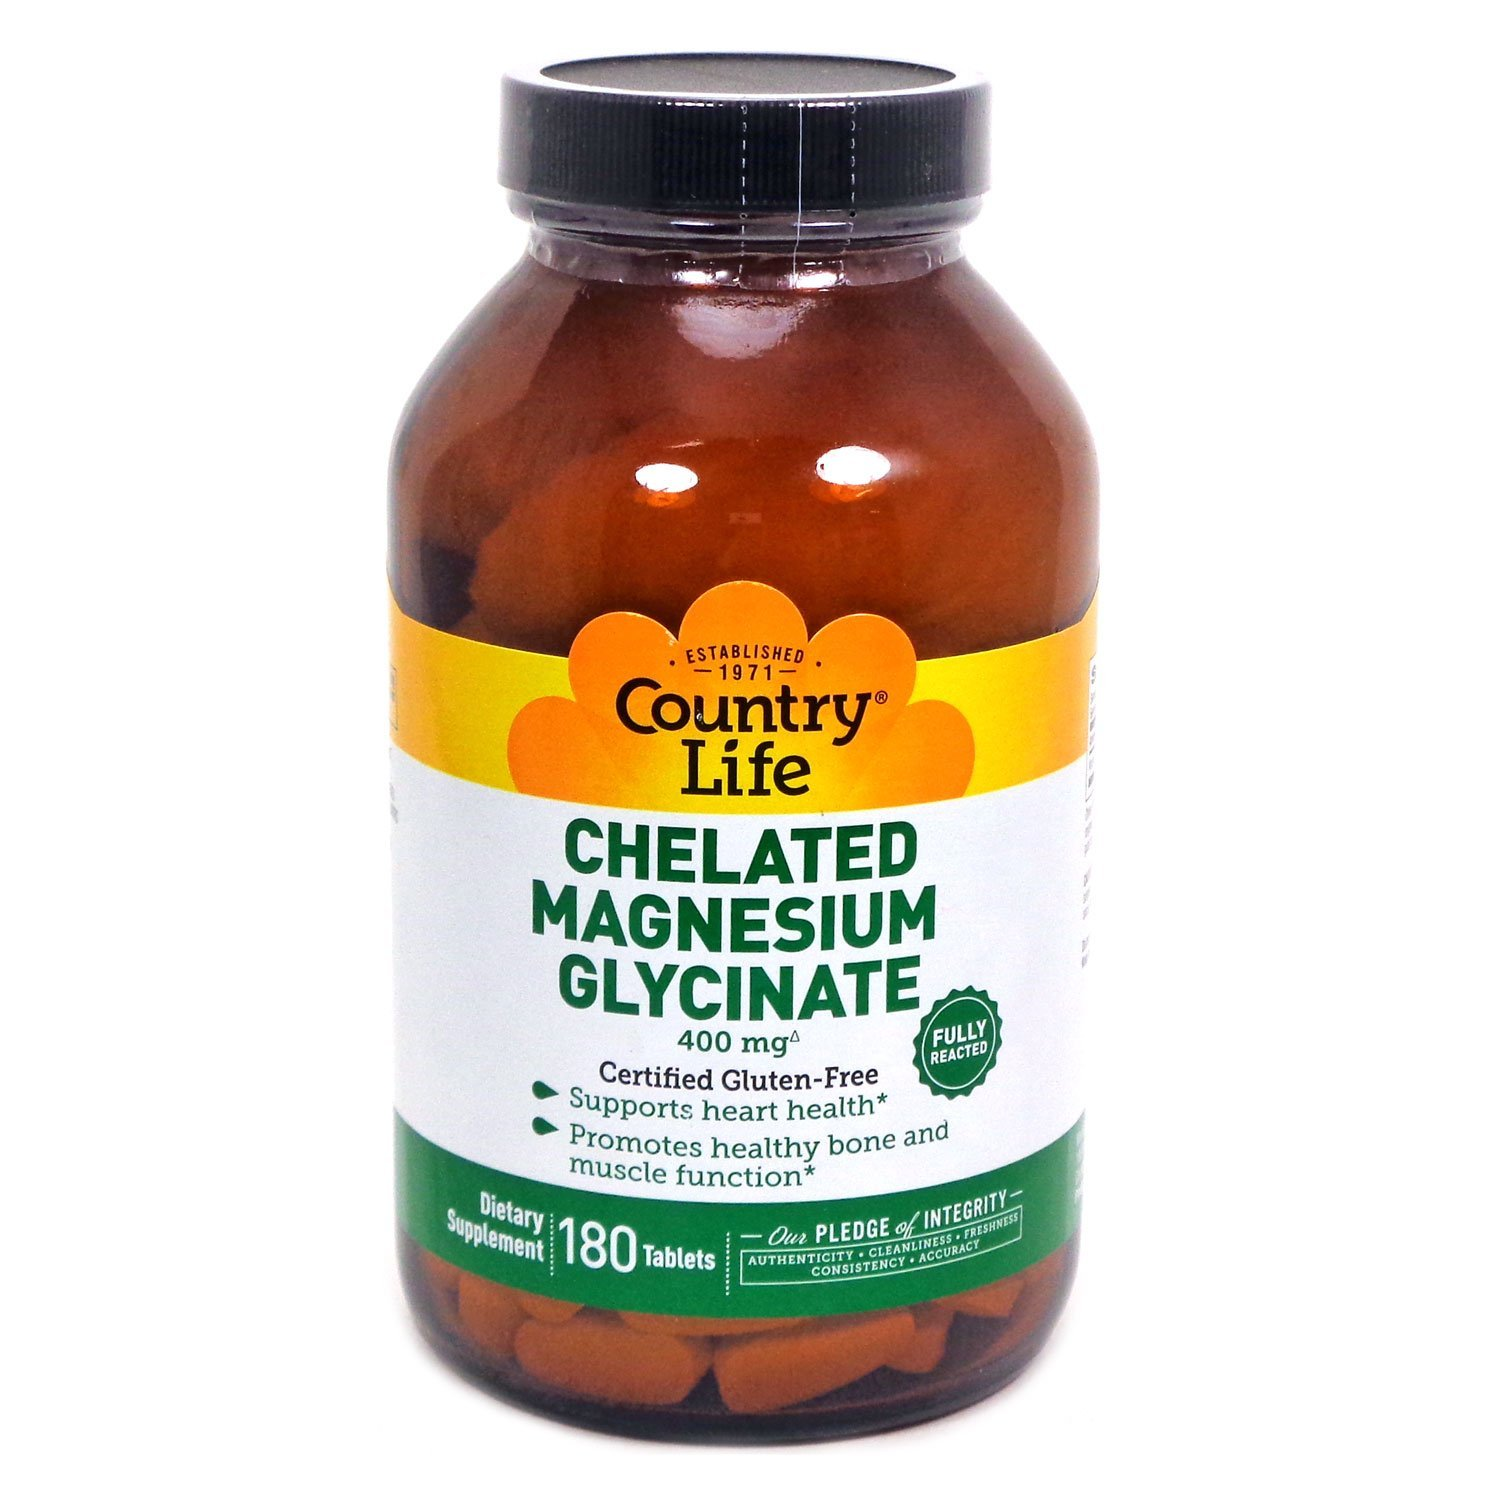 Country Life - Magnesio Chelated Glycinate 400 mg. - 180 tabletas: Amazon.es: Salud y cuidado personal